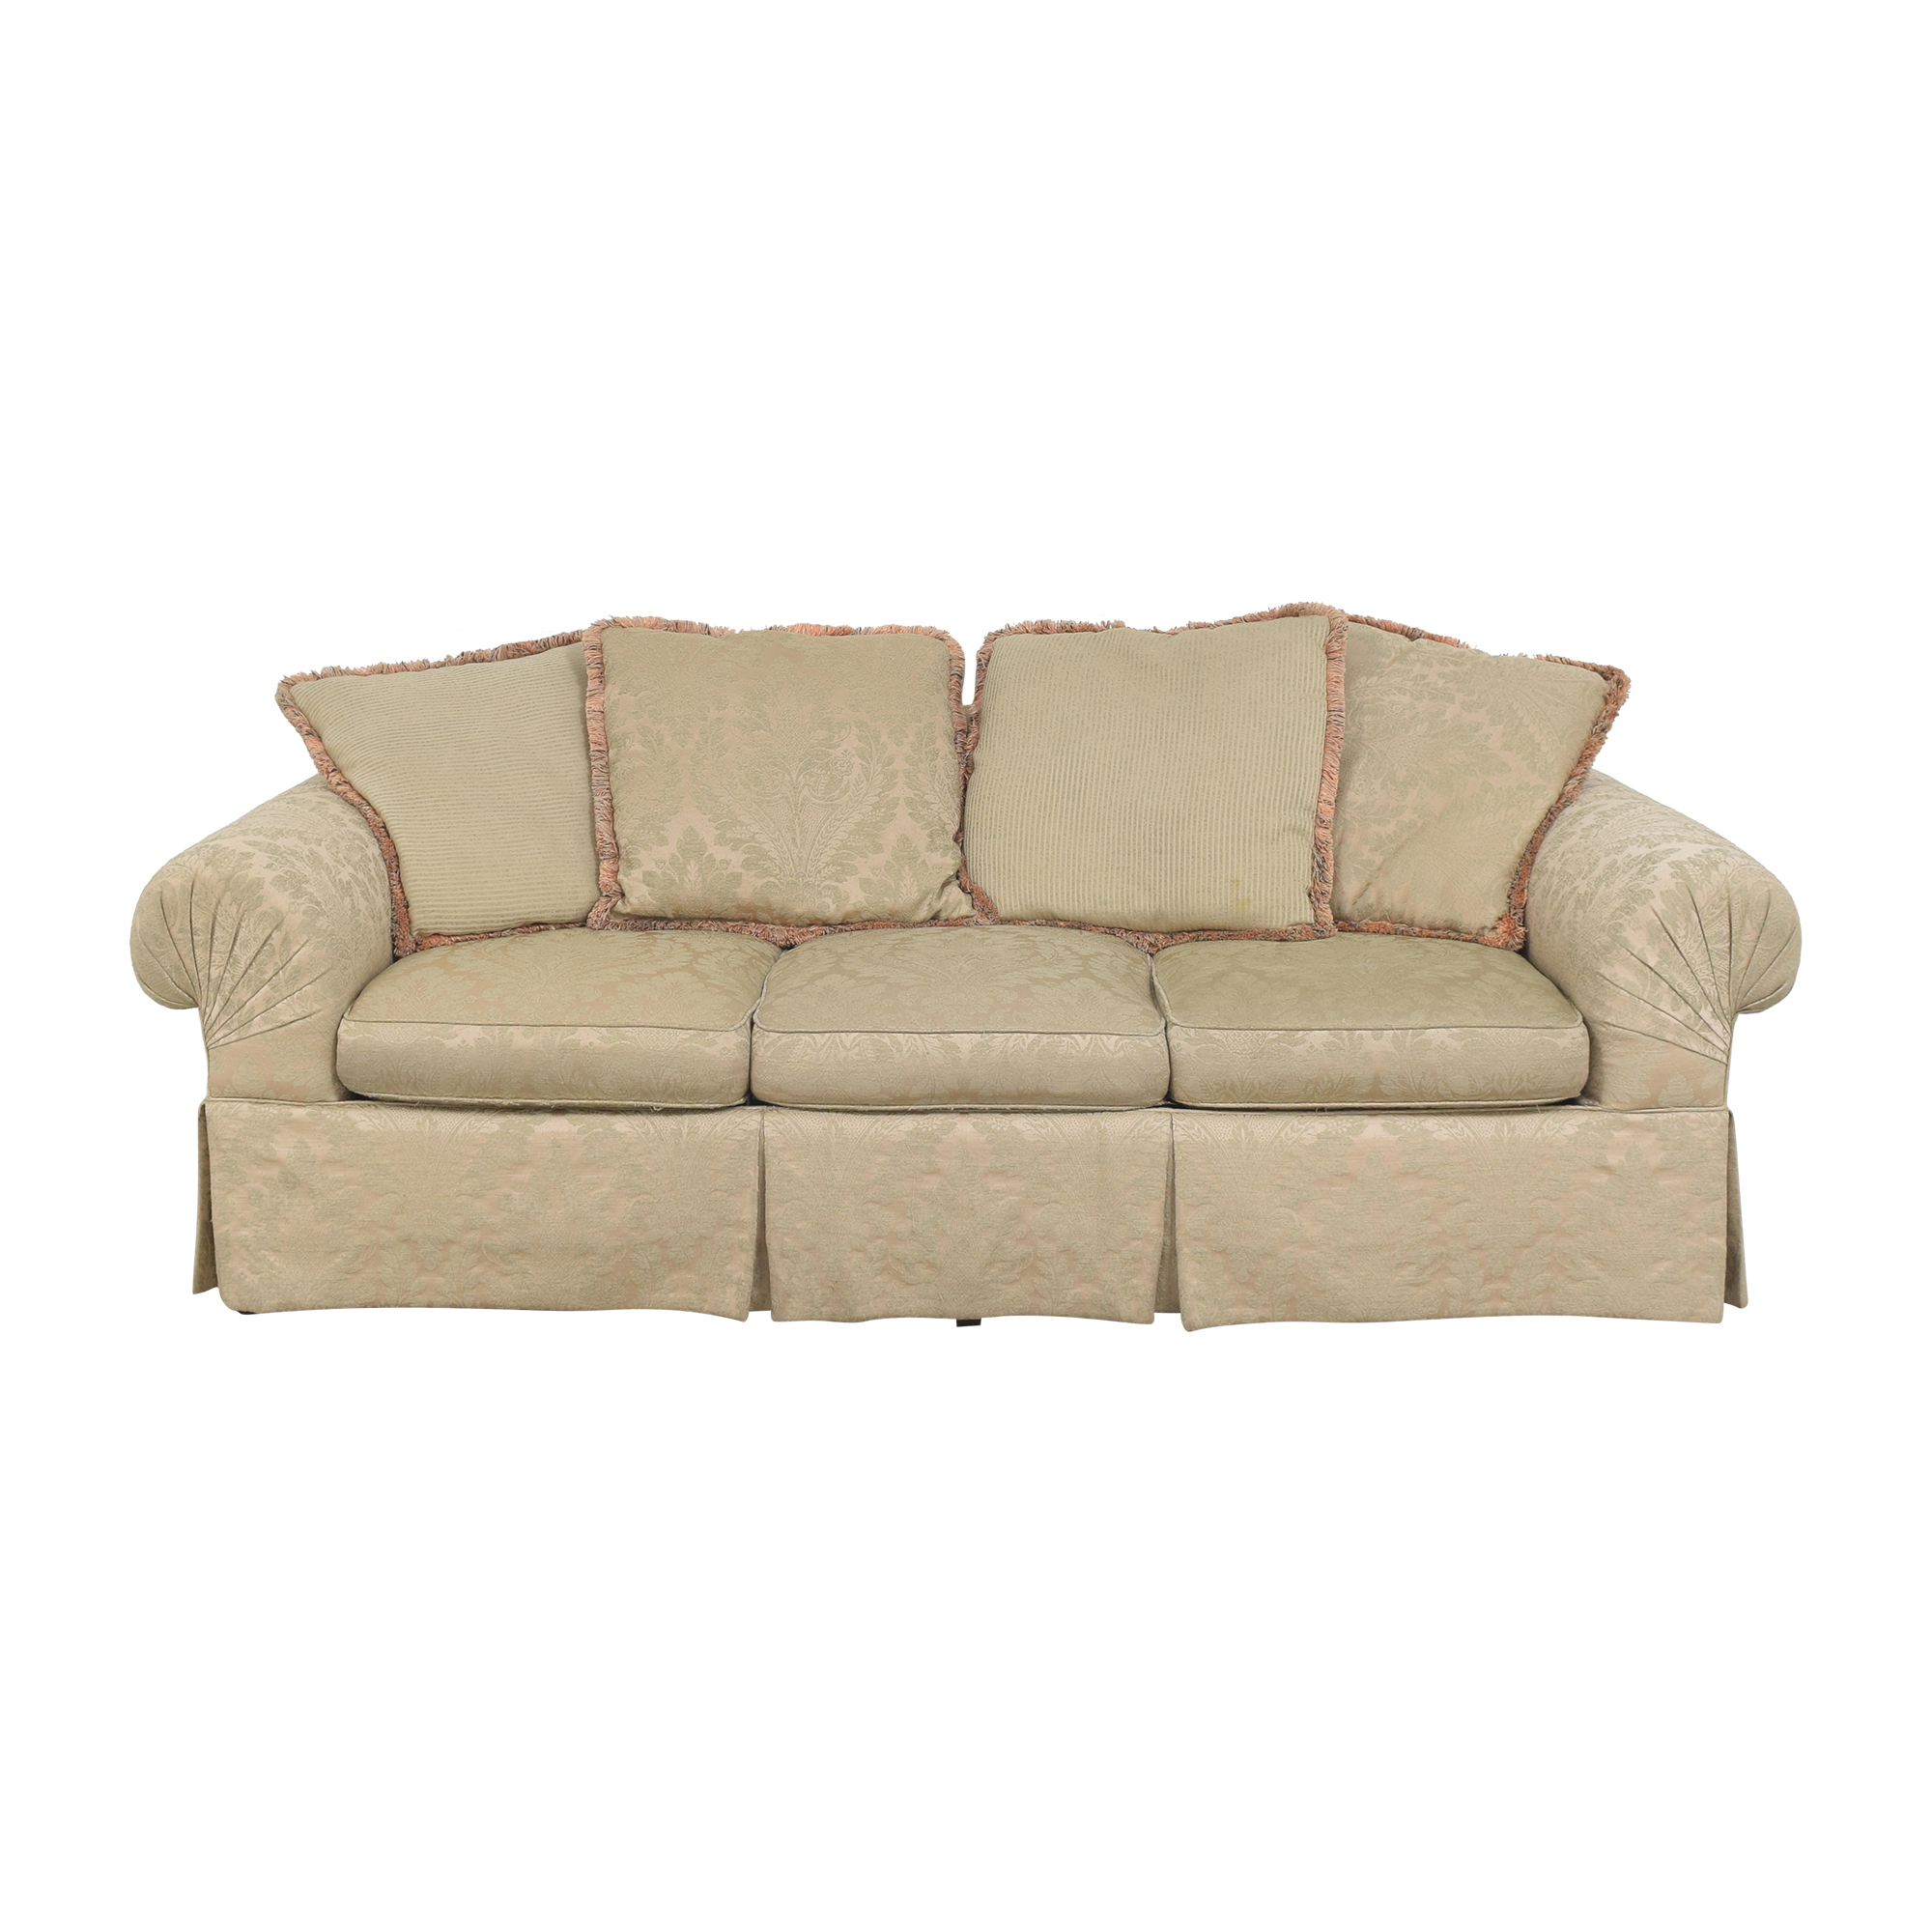 Lexington Furniture Lexington Furniture Skirted Roll Arm Sofa pa